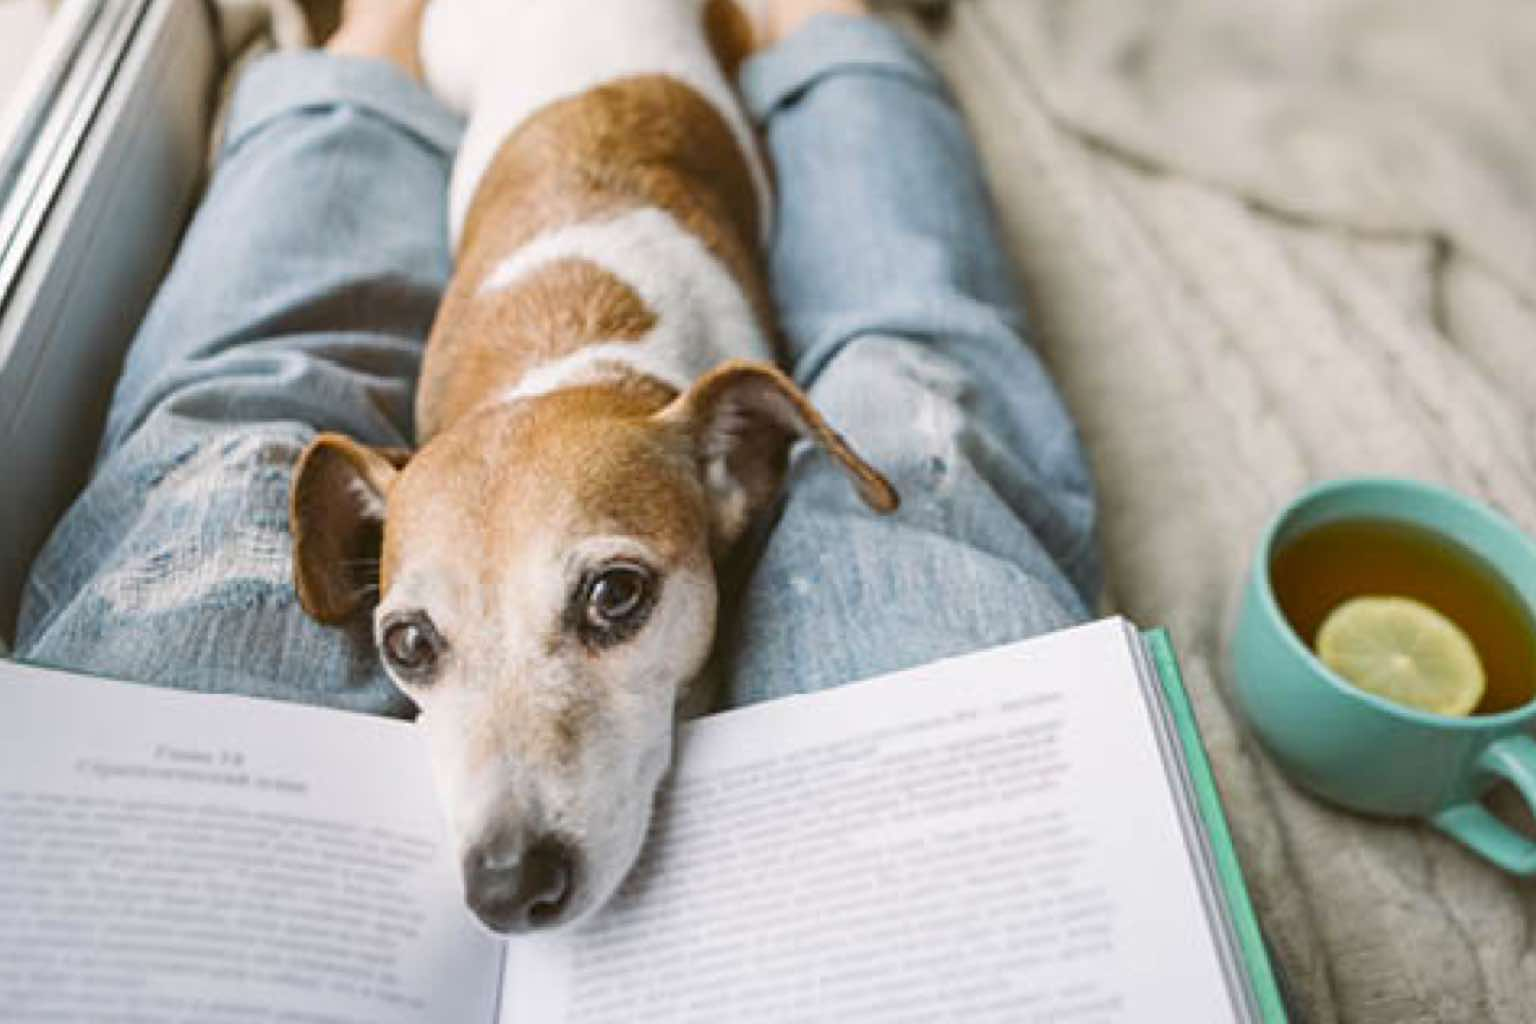 Dog laying in a person's lap next to an open book